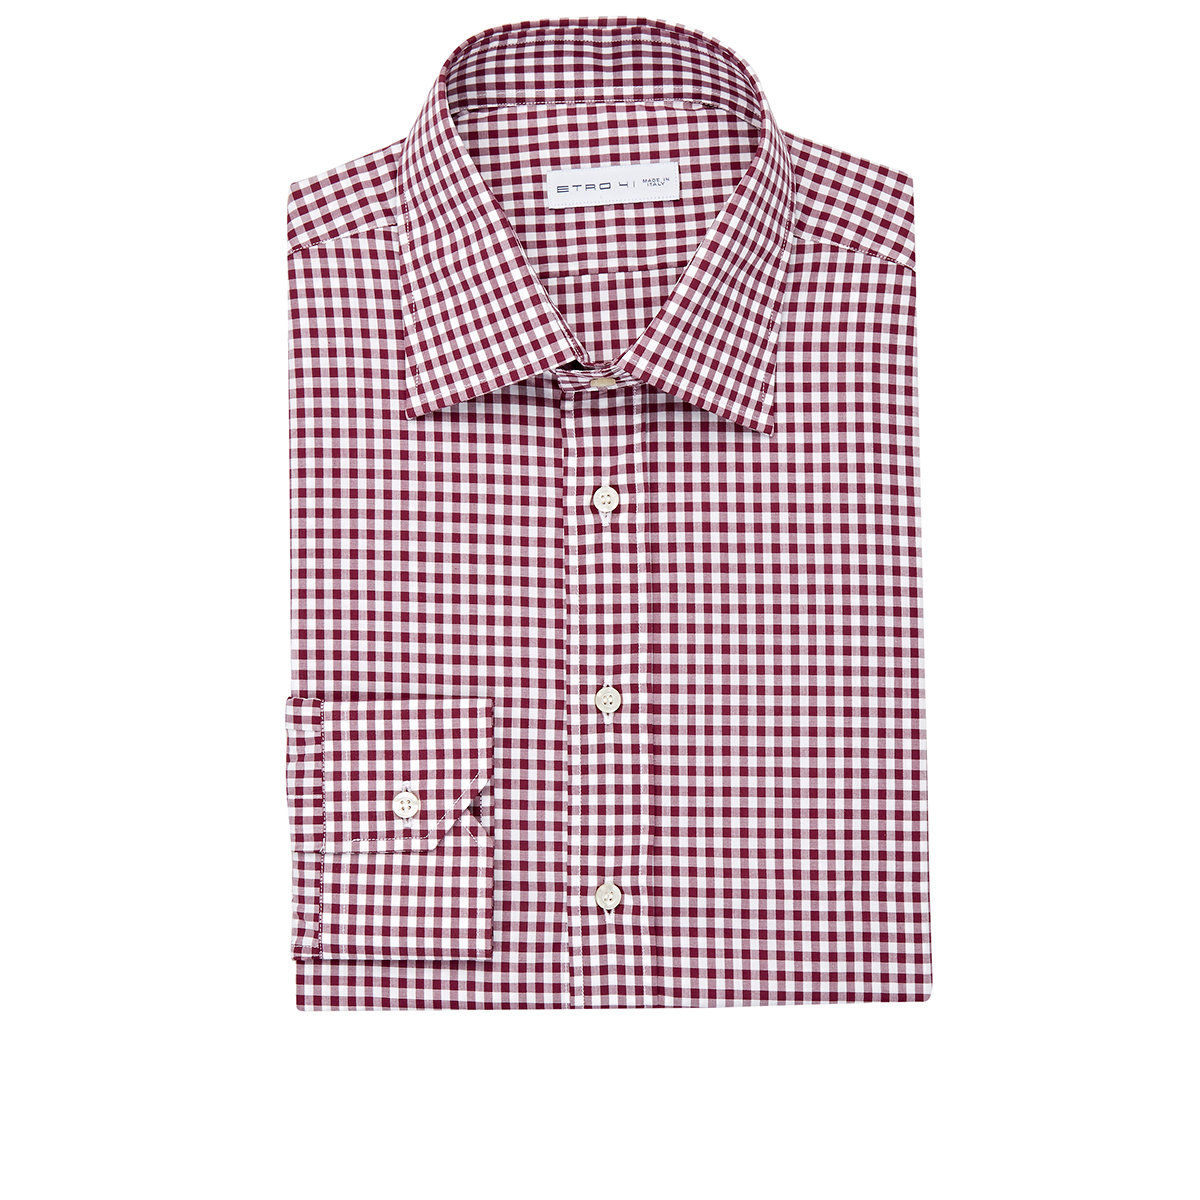 Lyst etro men 39 s gingham dress shirt in red for men for Men s red gingham dress shirt